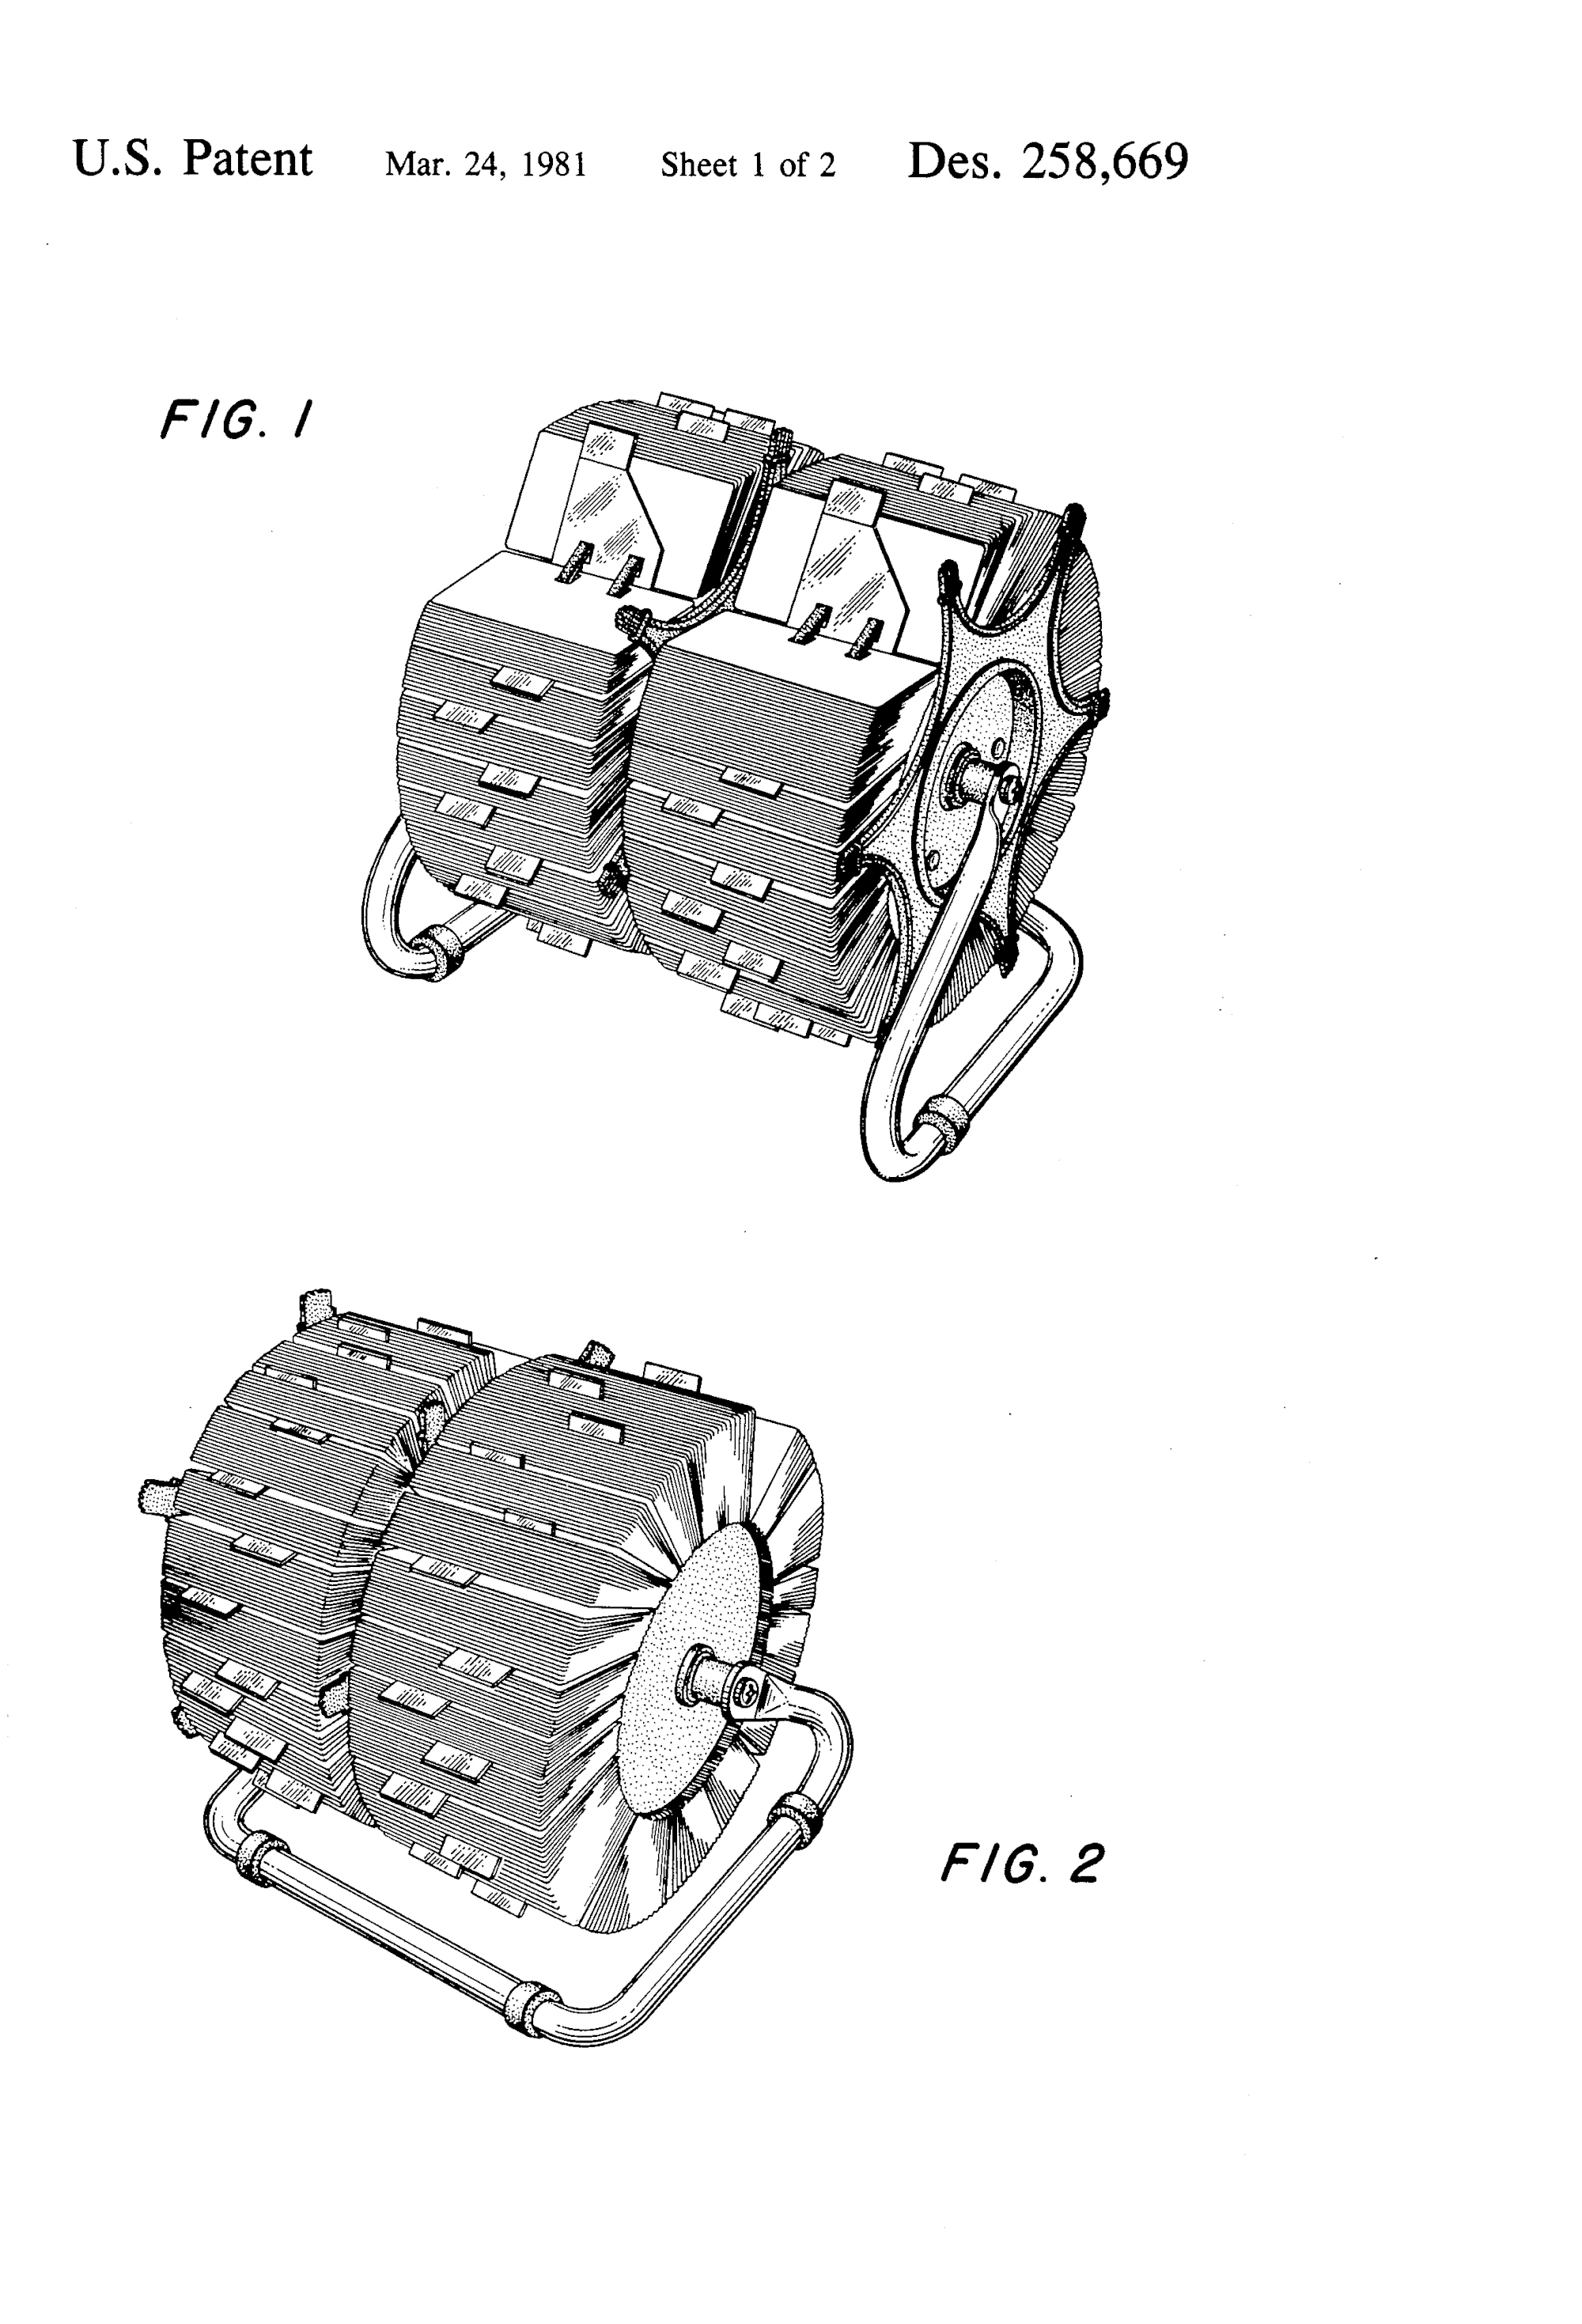 Rotary Card File, Hildaur L. Nielsen, for Rolodex Corporation, 1977/1981. Patent Number: USD 258,669, U.S. Patent Office